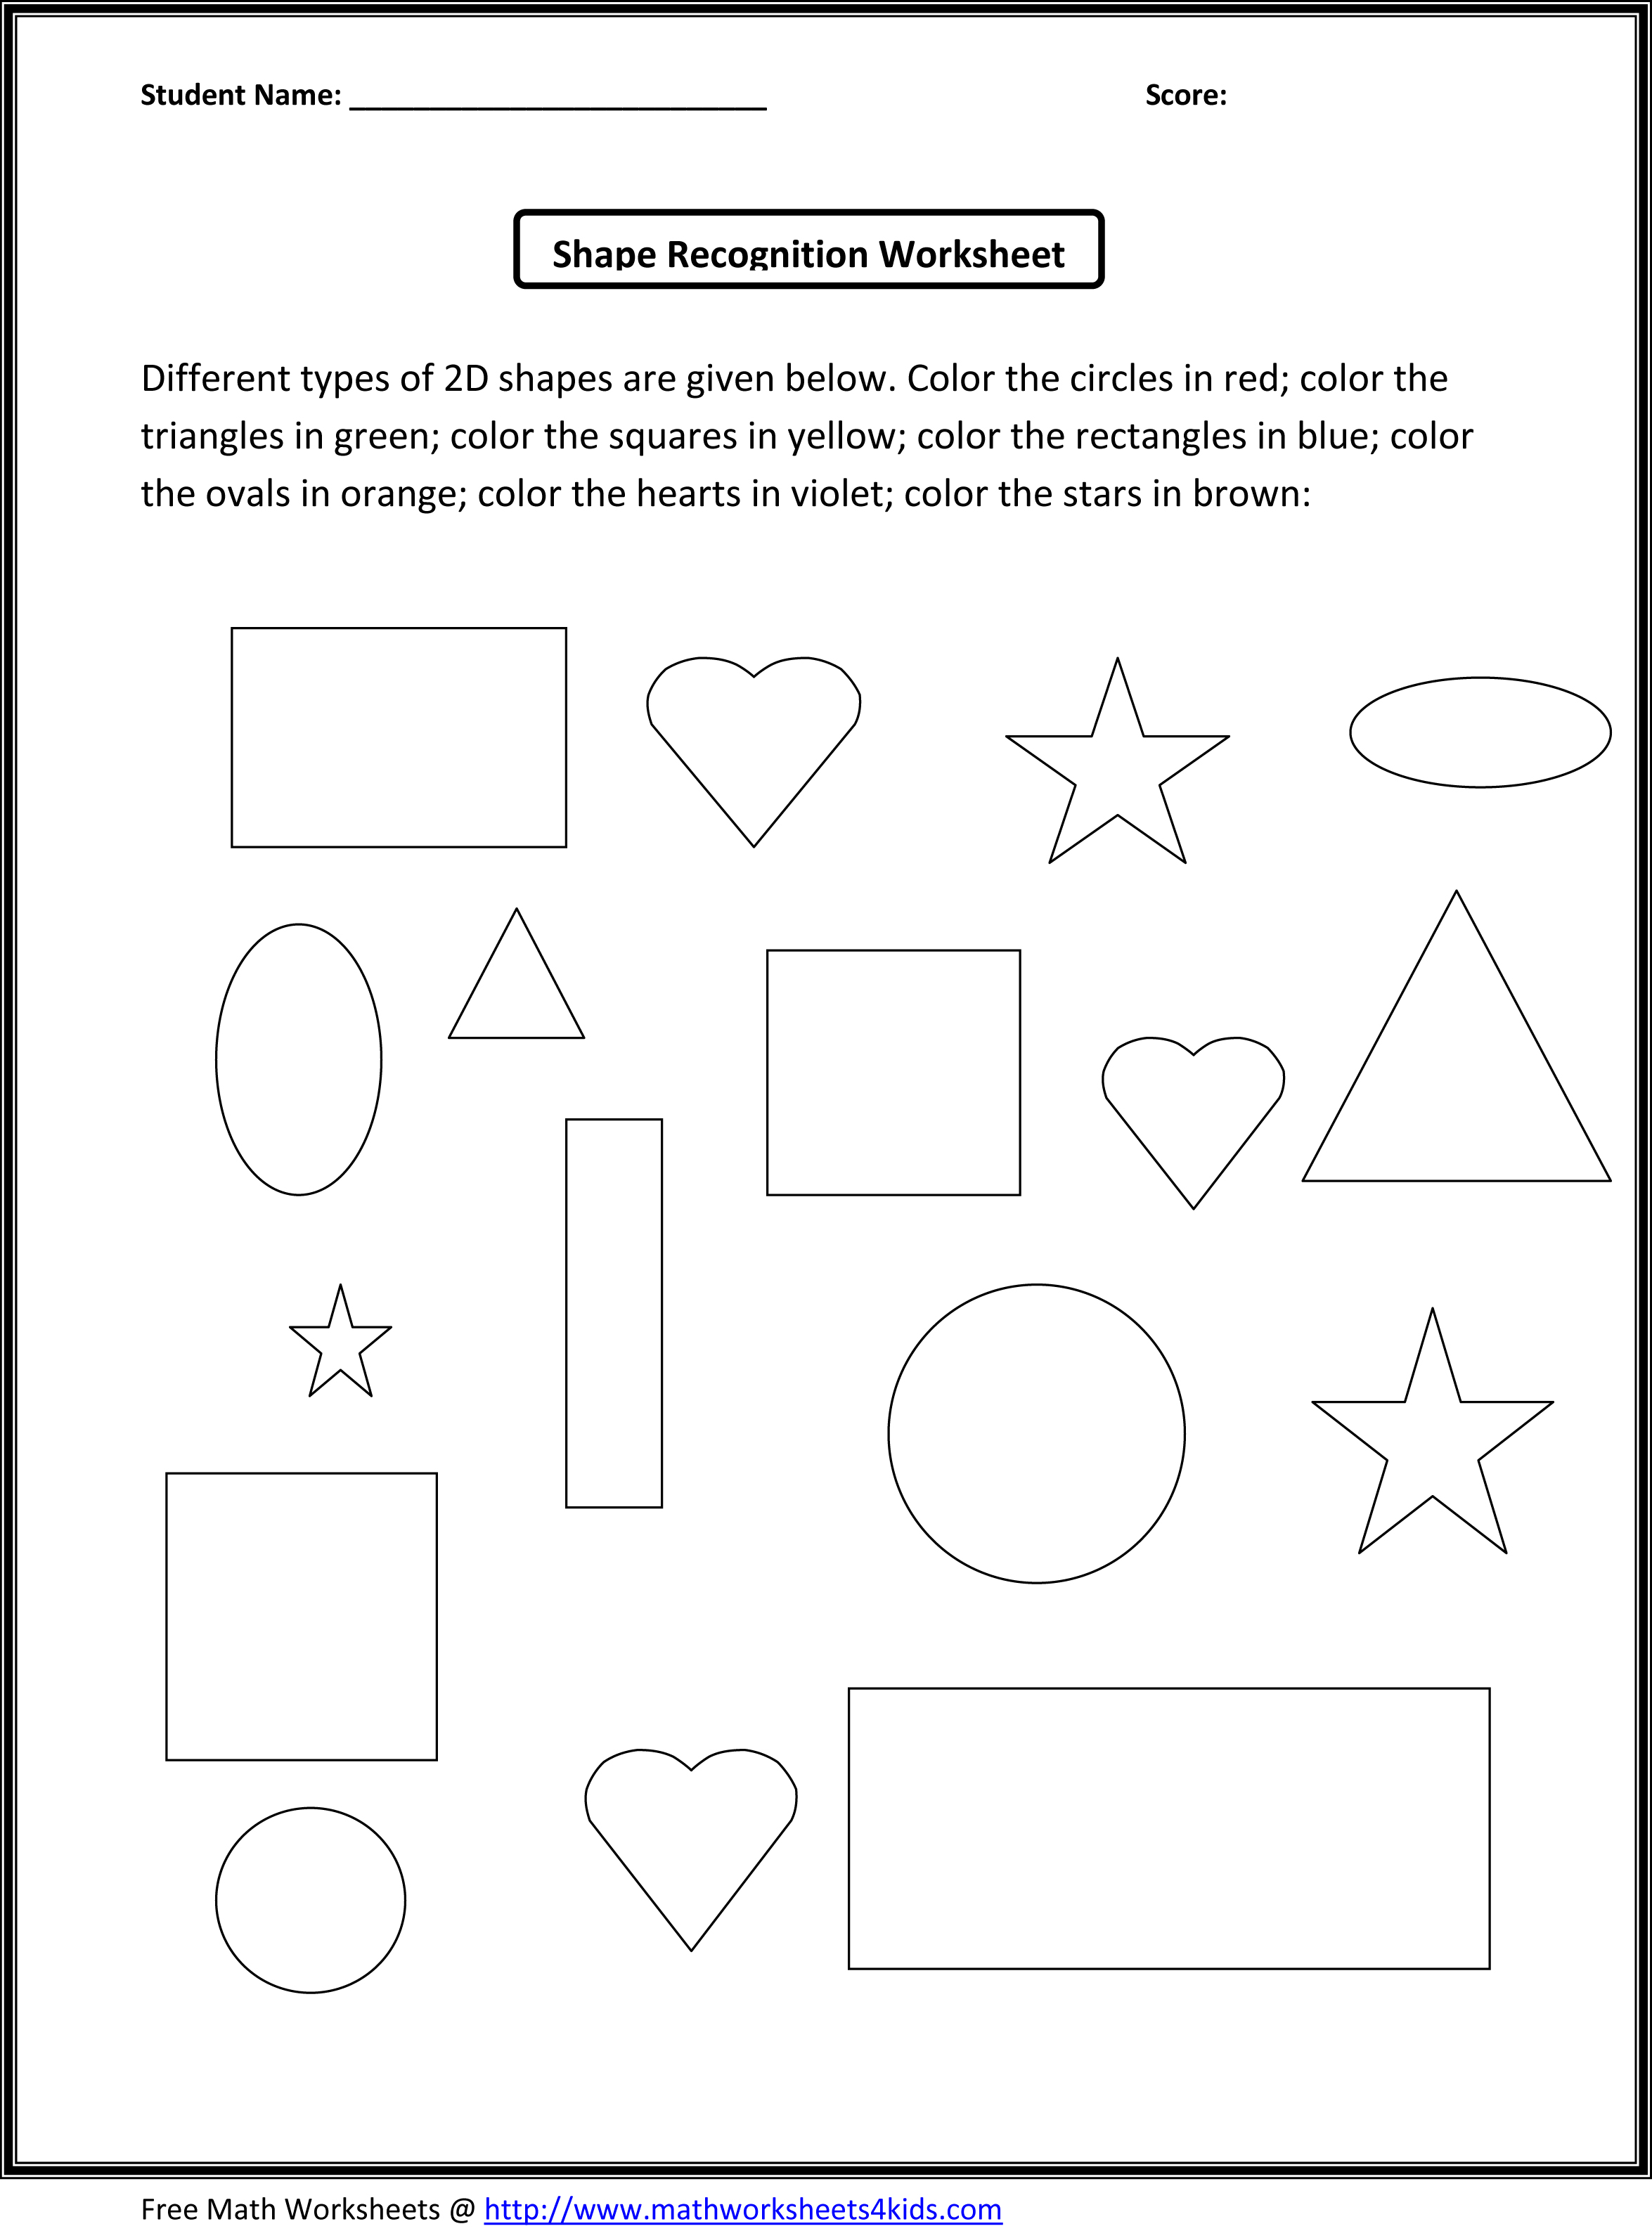 14 Best Images Of Life Science Worksheets Printable